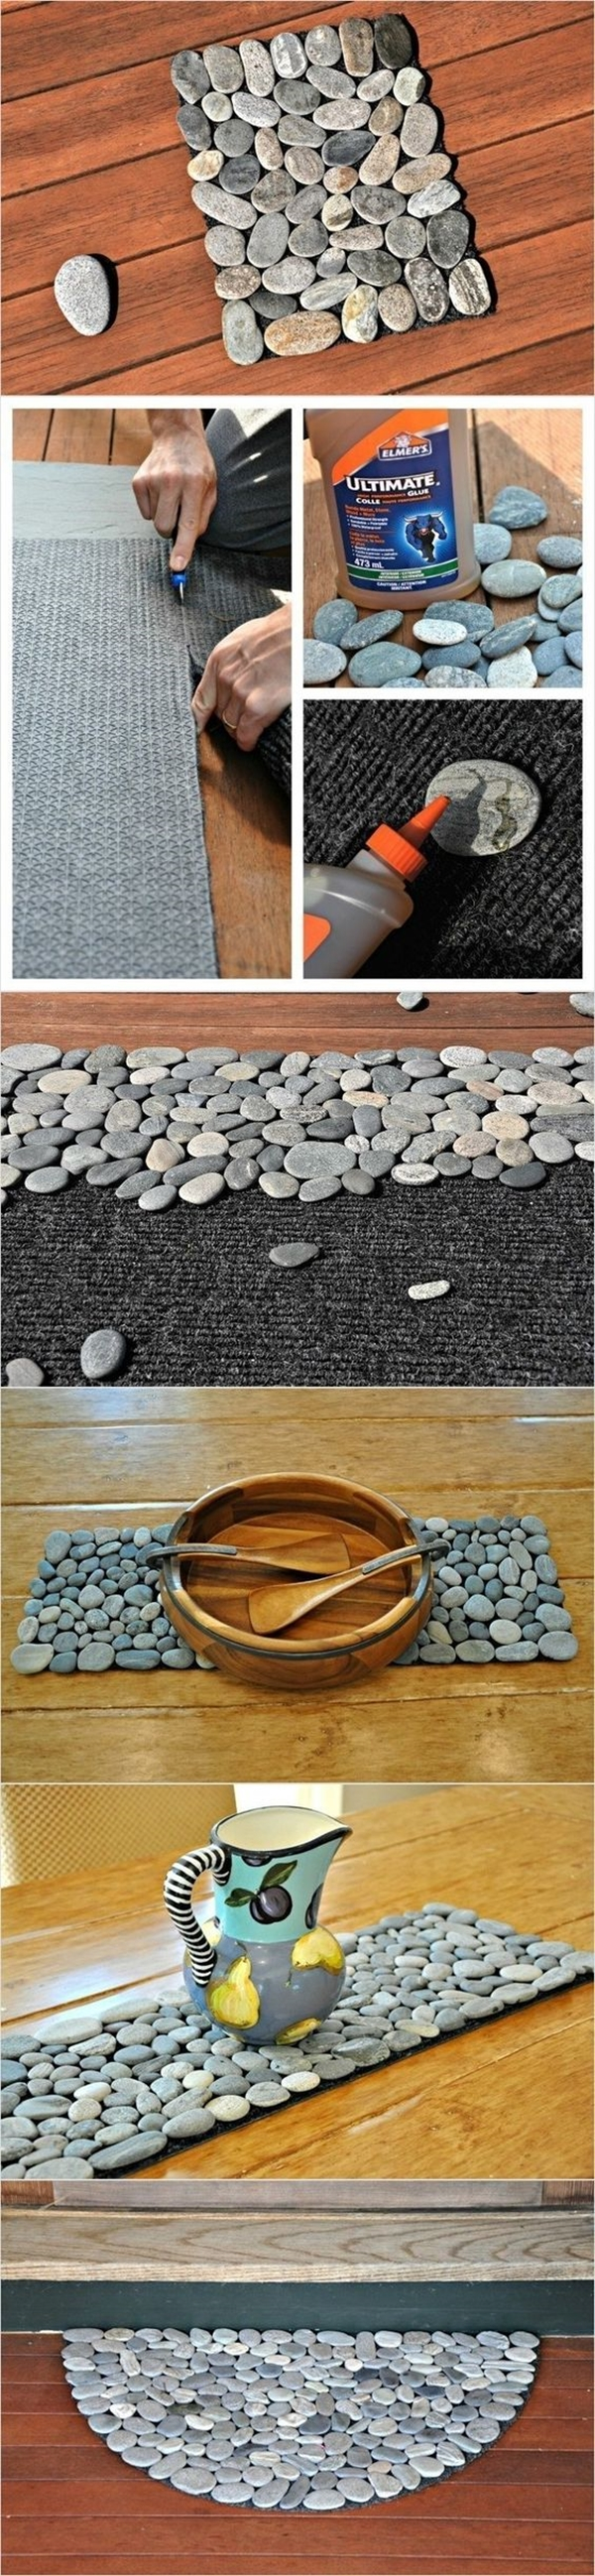 Cool Ways to Use STONE For DIY Projects in 2016 - 3